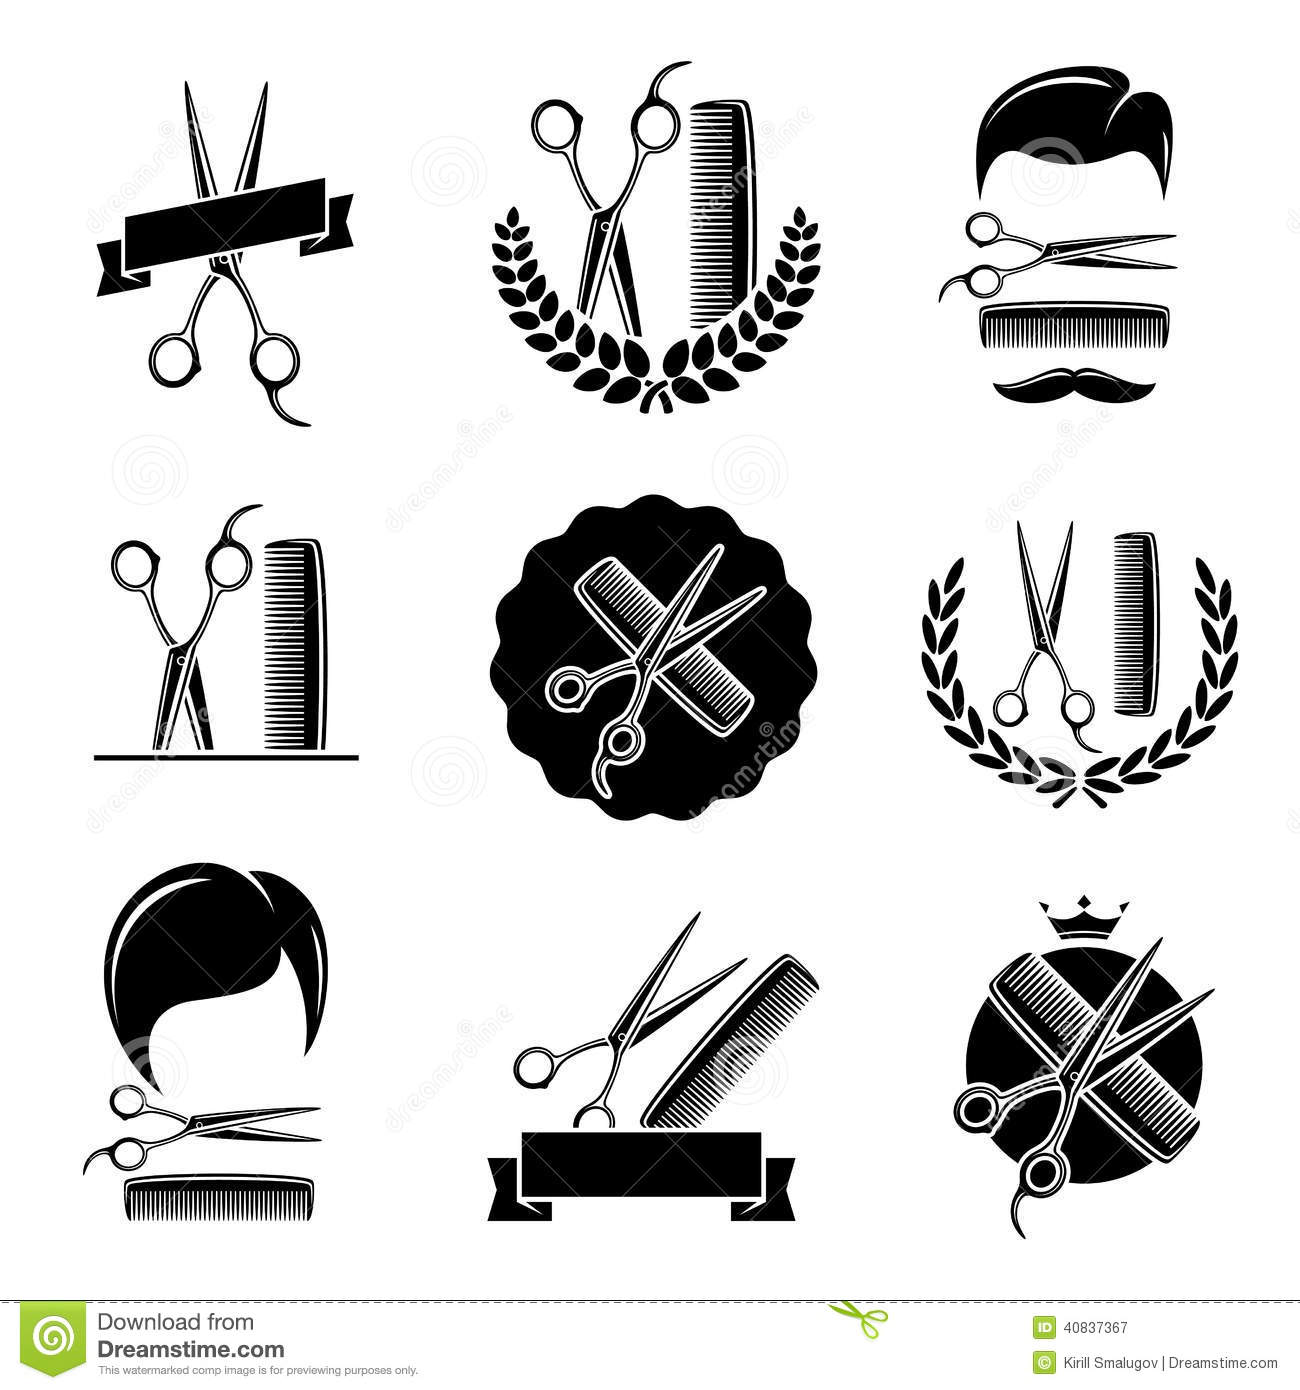 Barber Vector : Barber shop set. Vector illustration barber, shop, hair, comb.